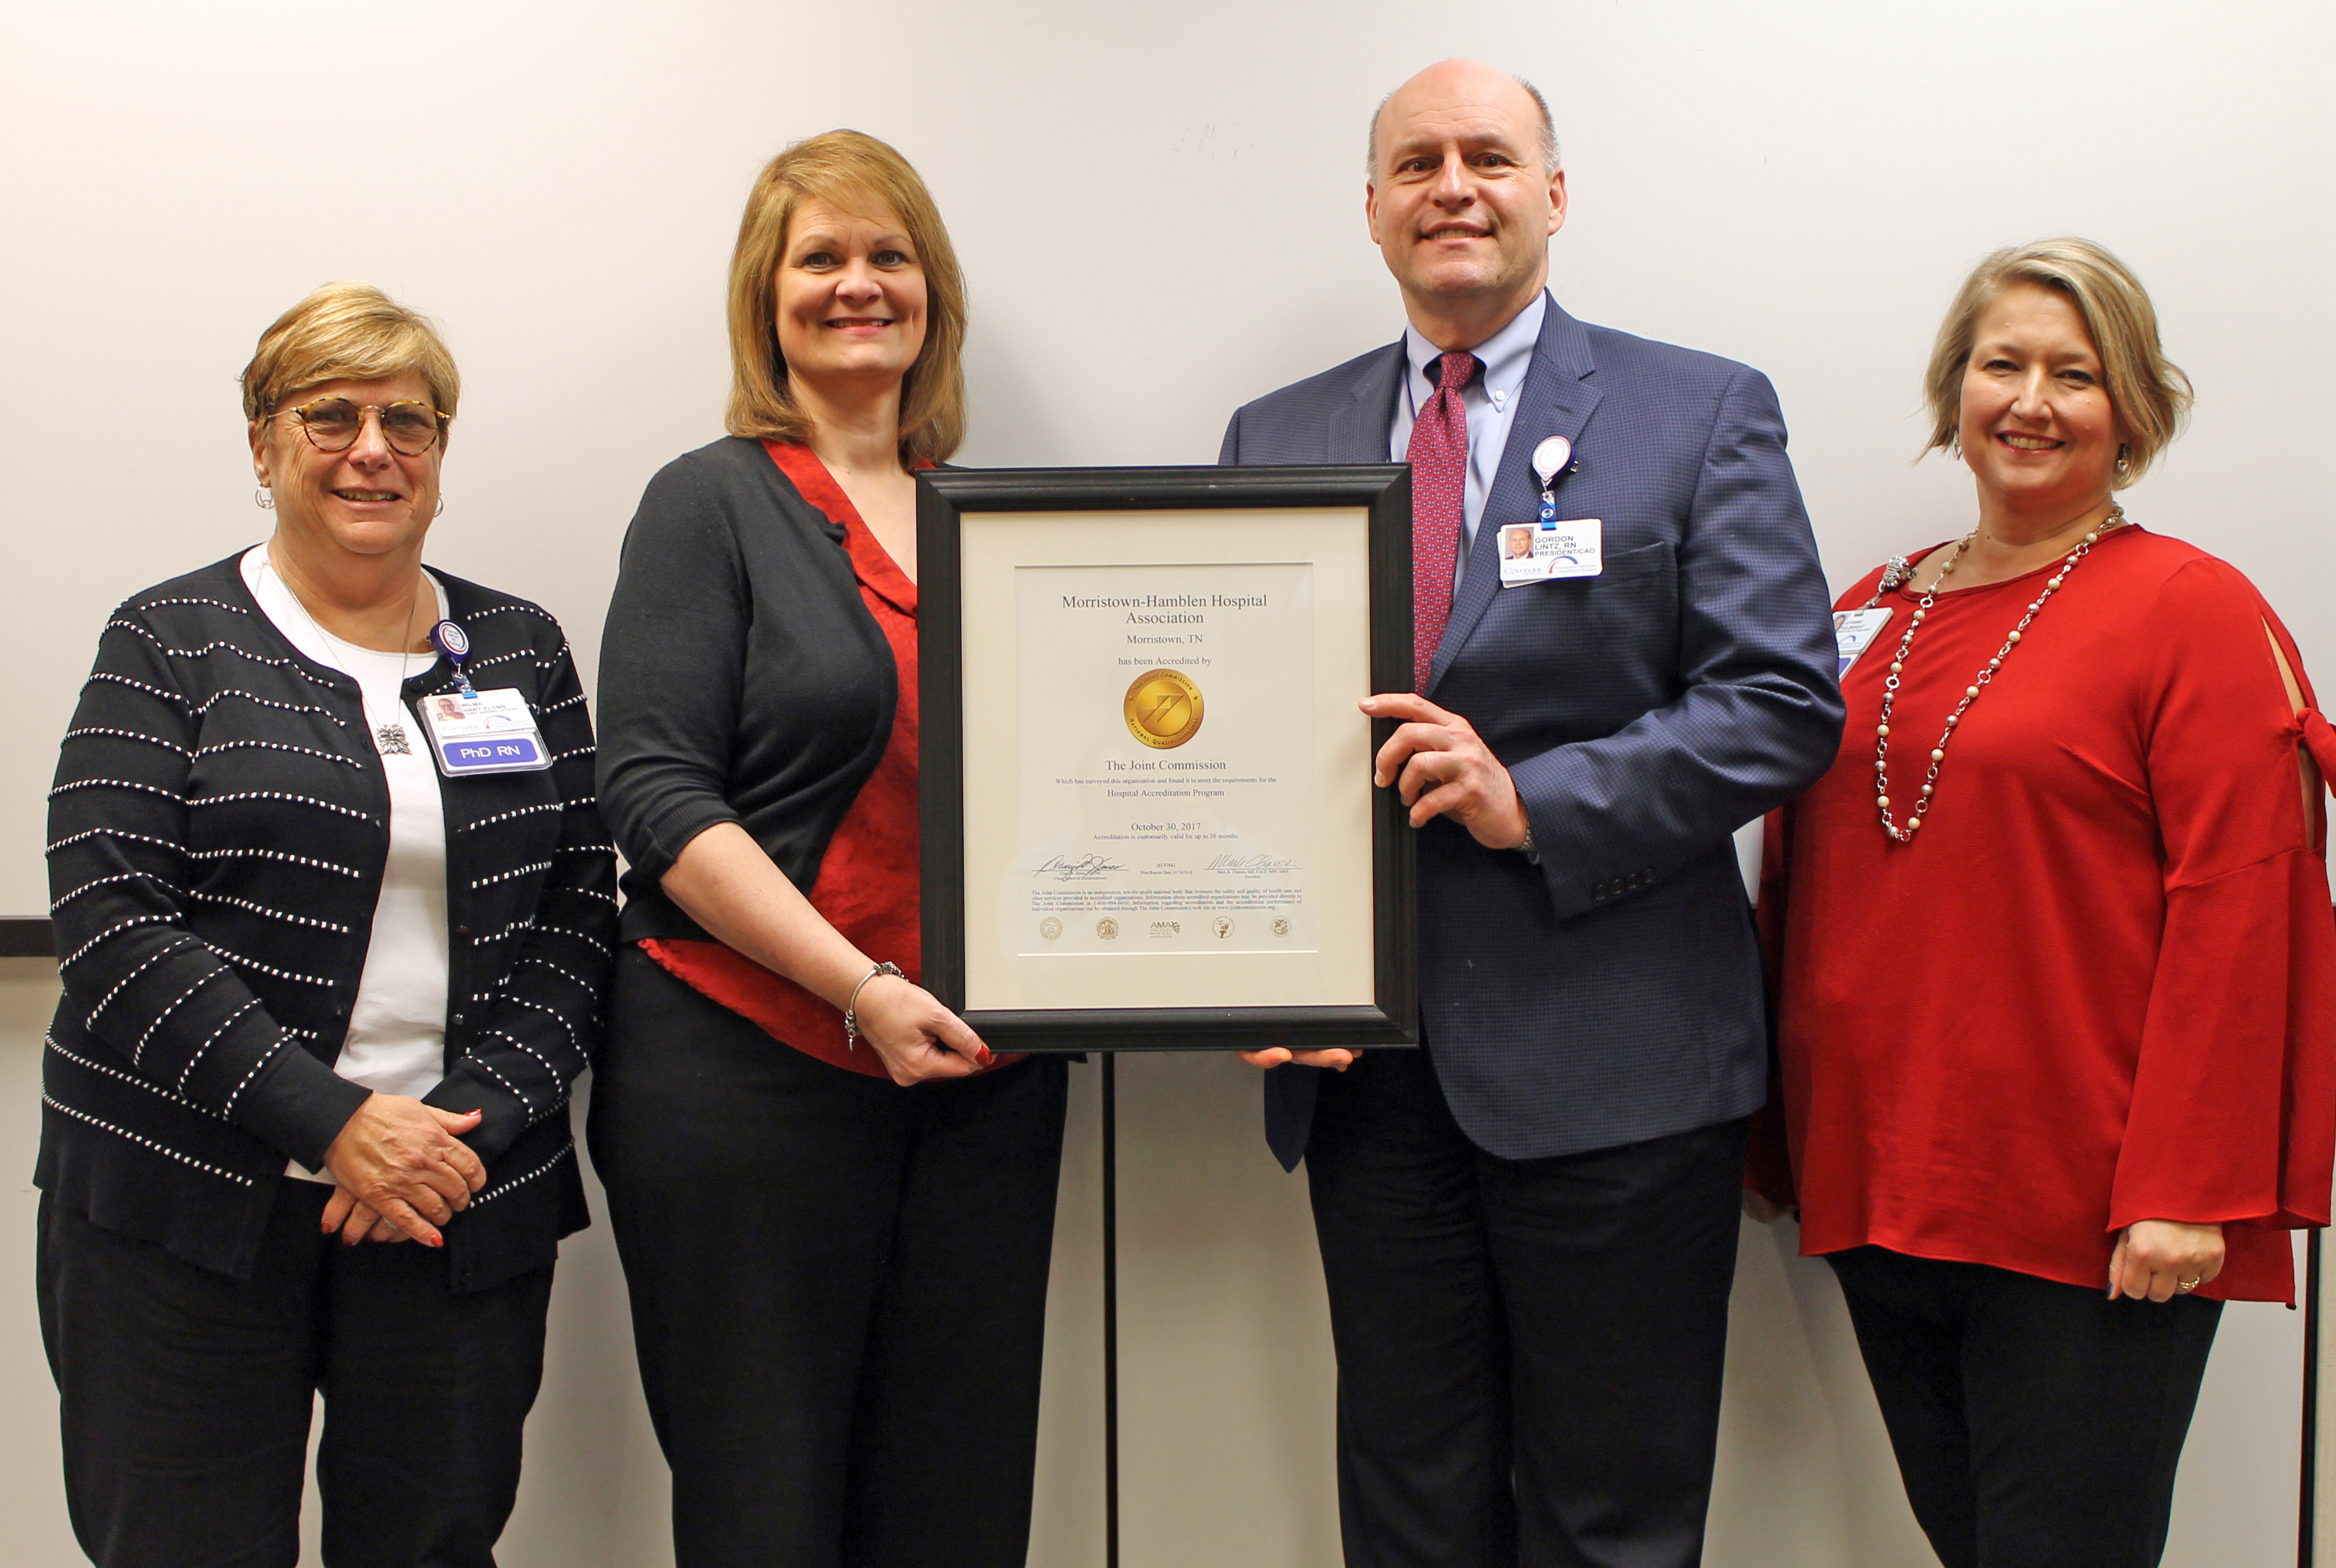 Morristown-Hamblen Healthcare System Administration holding certificate awarded by the Joint Commission